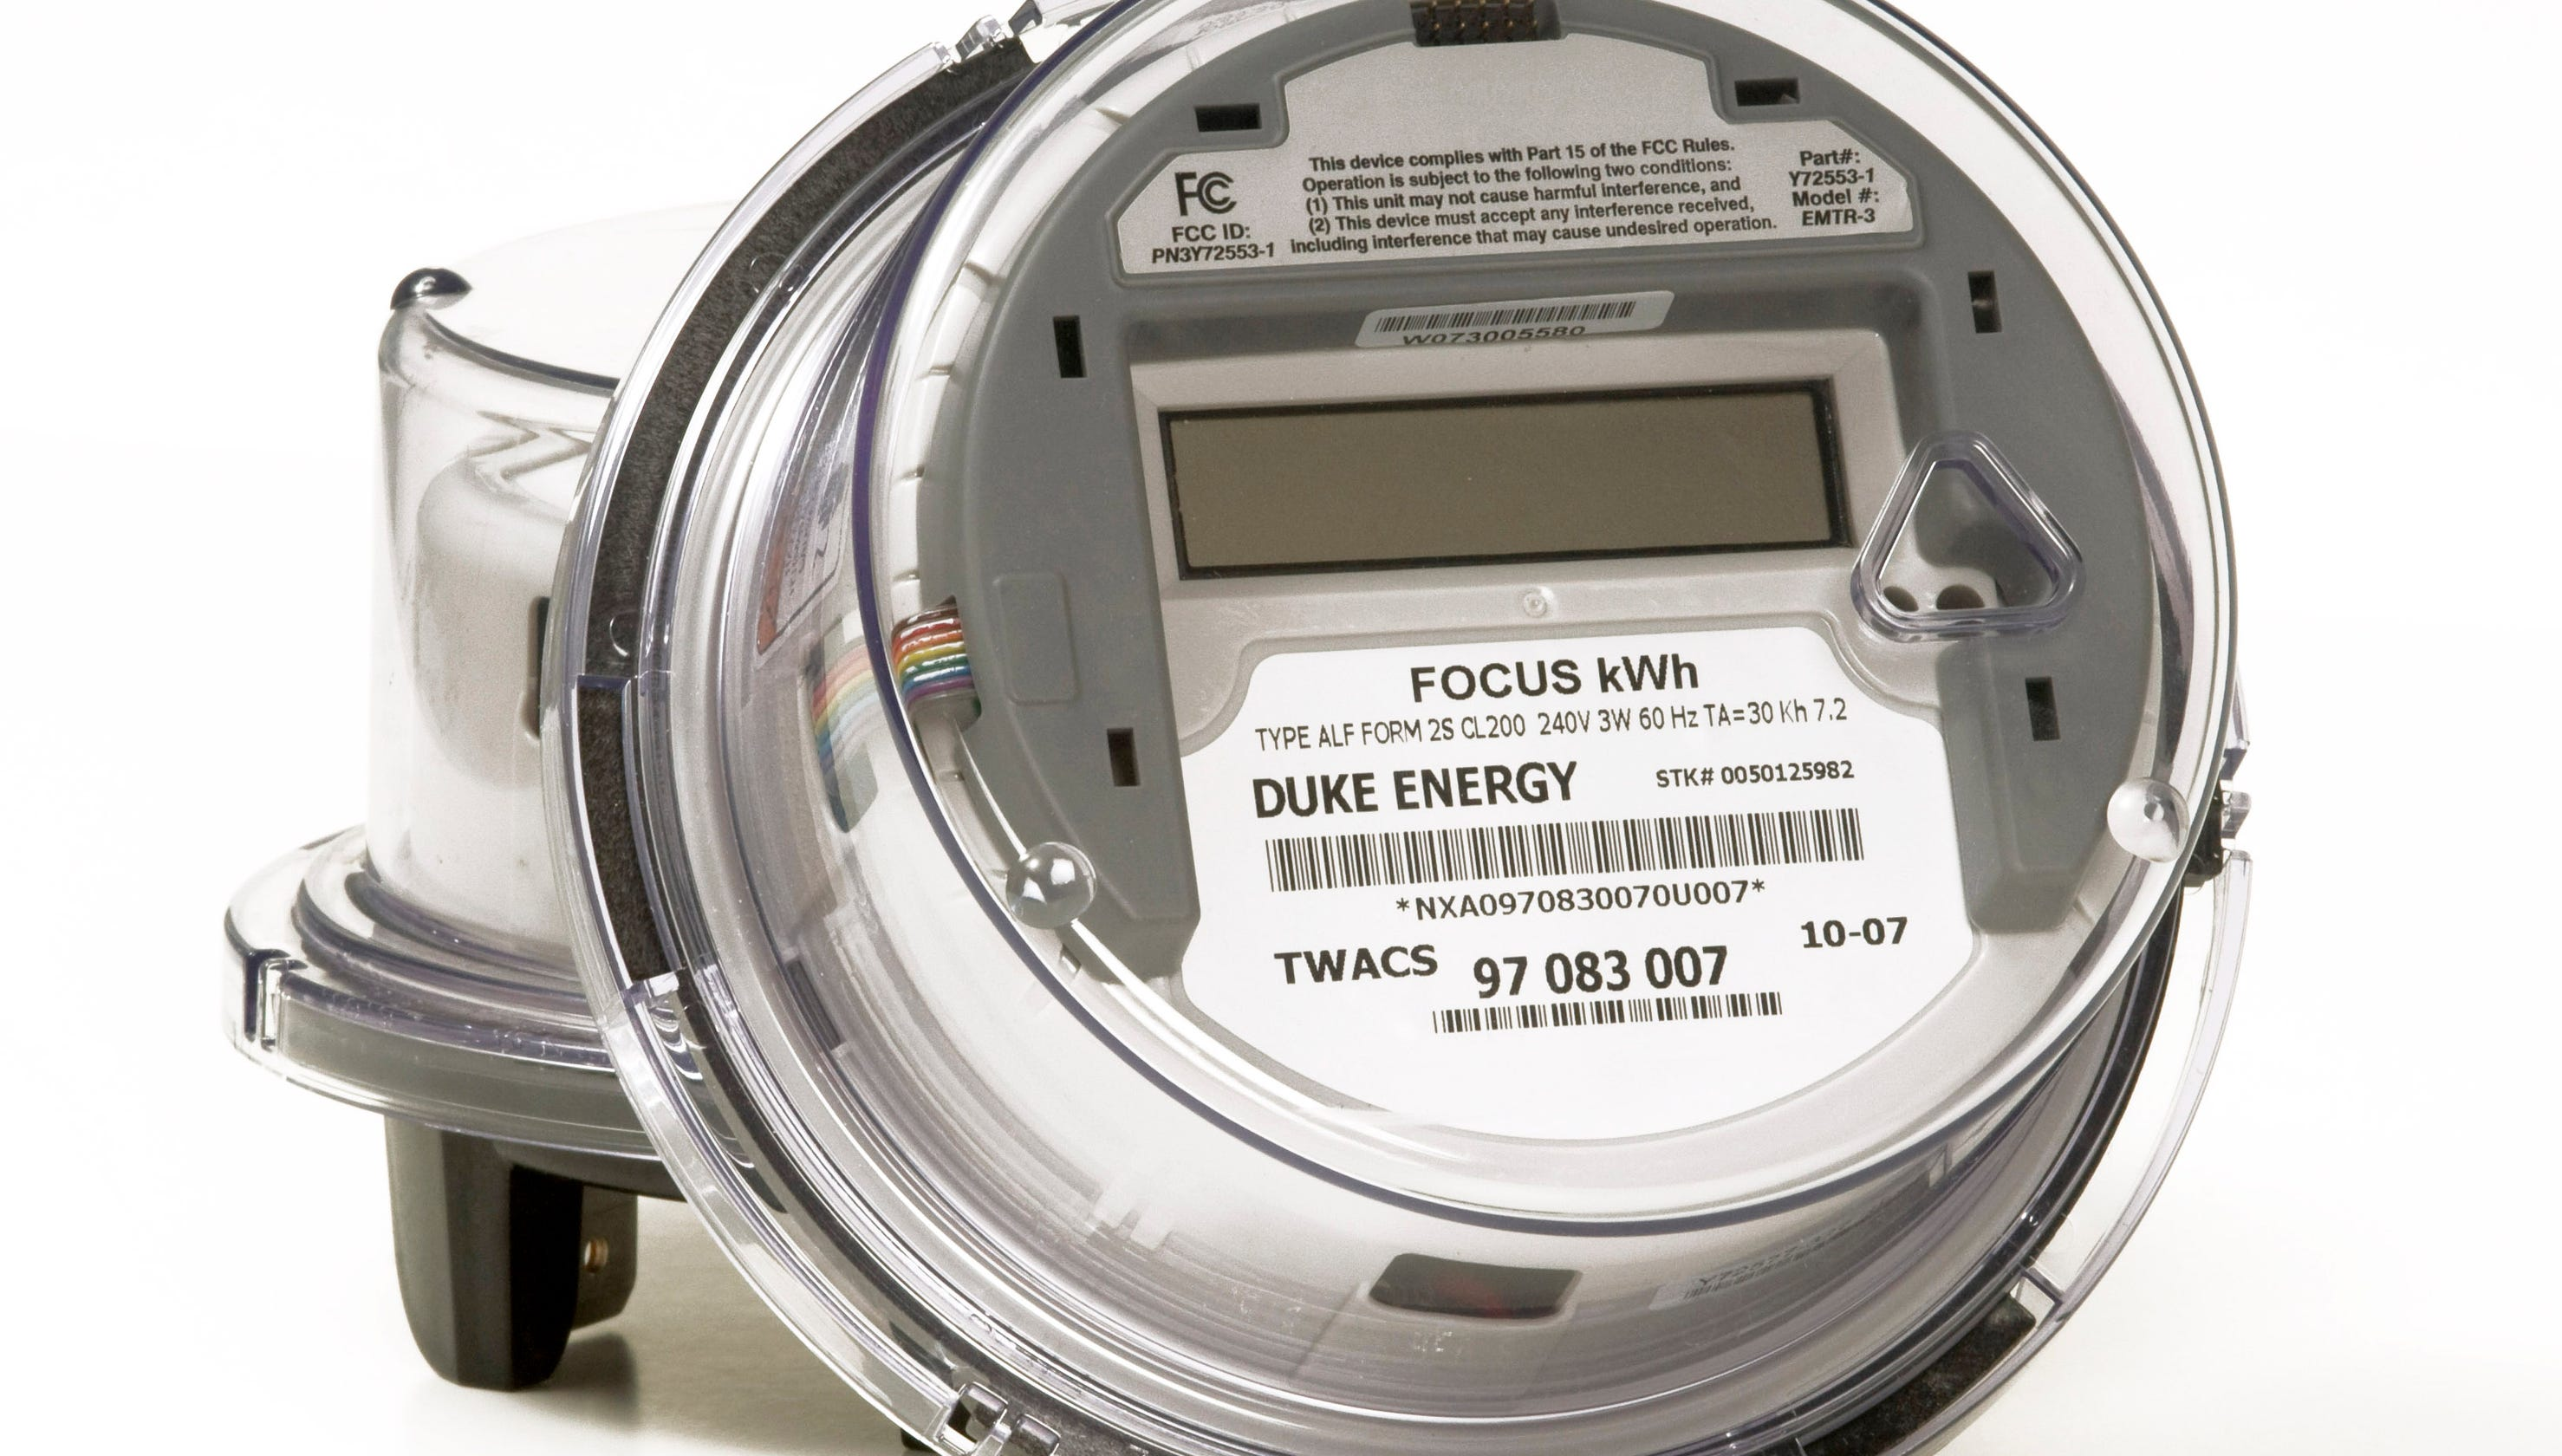 Are Duke Energy 'smart meters' really that smart? Ask Answer Man